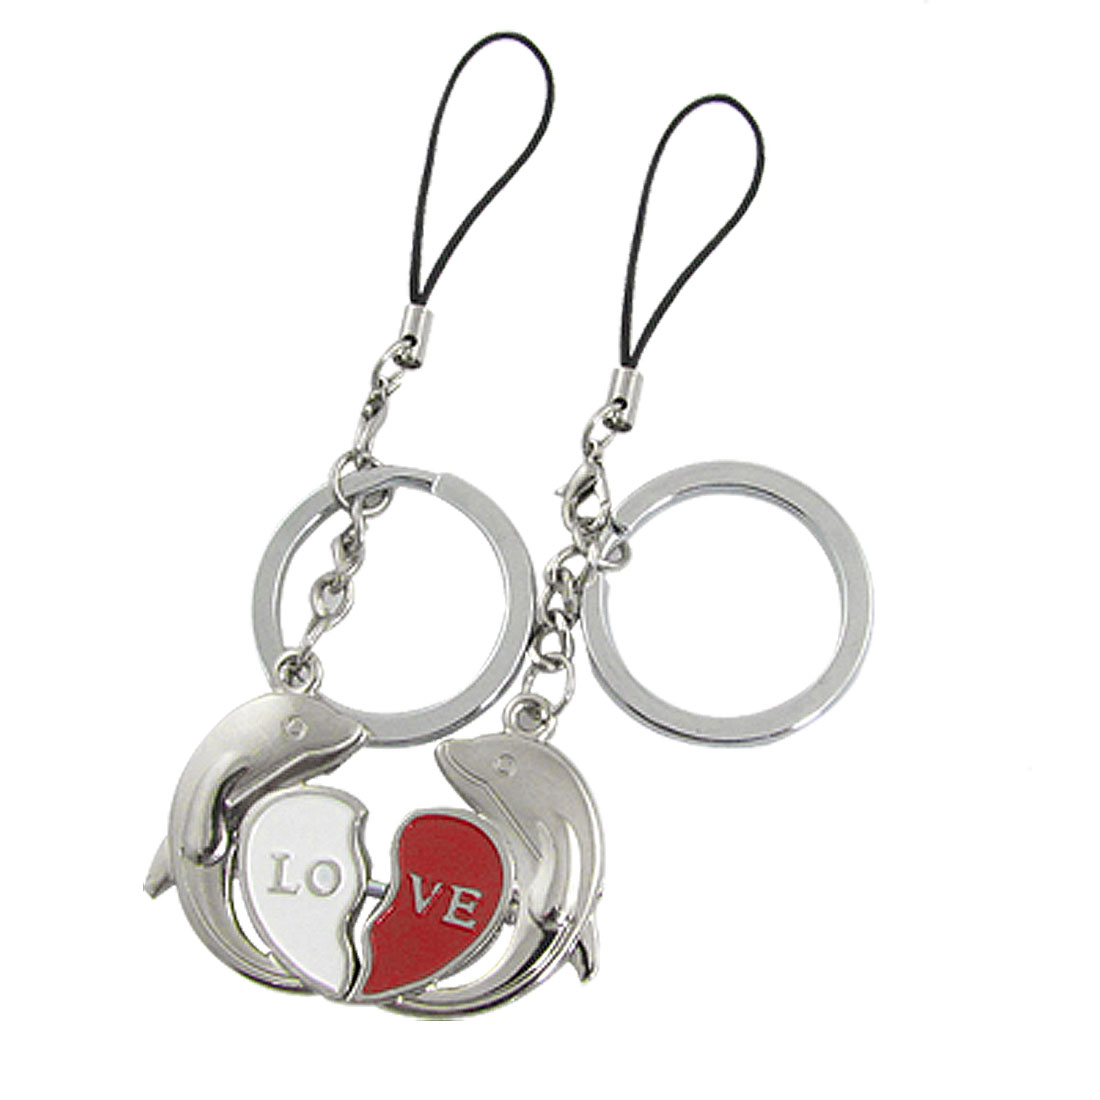 Lovers Pair Magnetic Dolphin Shape Pendant Keyring Chain w Strap